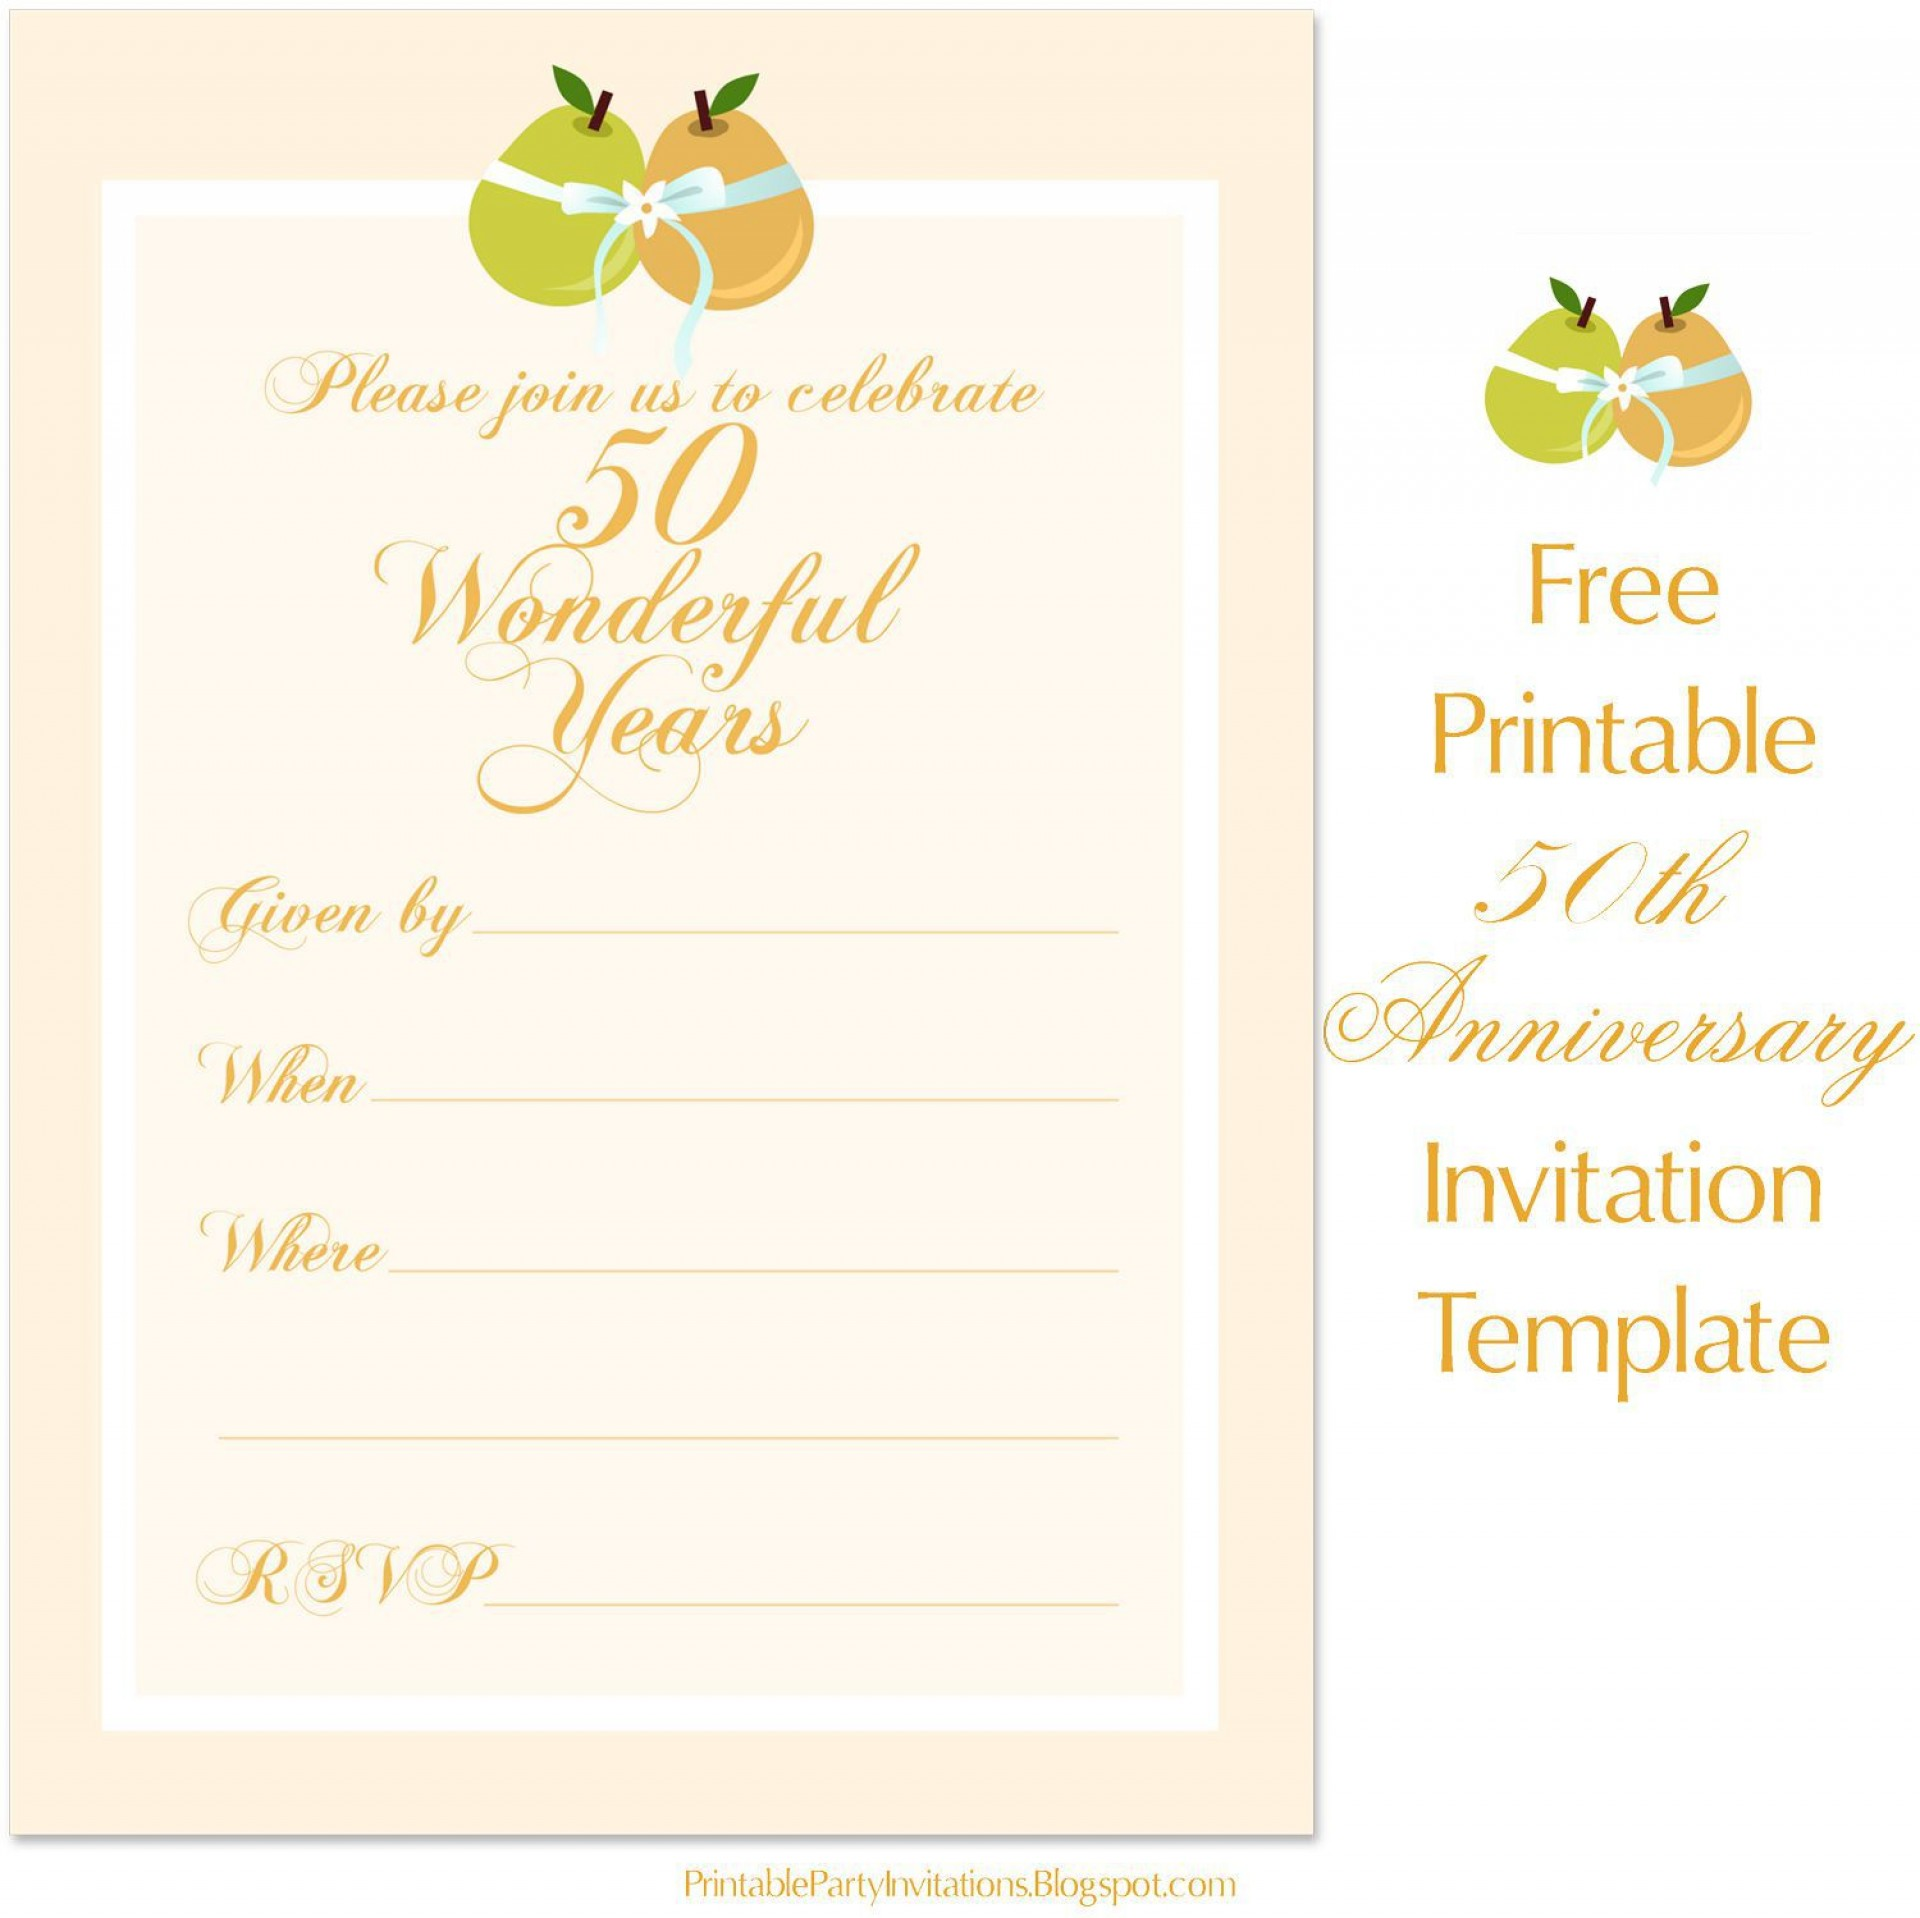 001 Best Free 50th Anniversary Invitation Template For Word Highest Clarity 1920